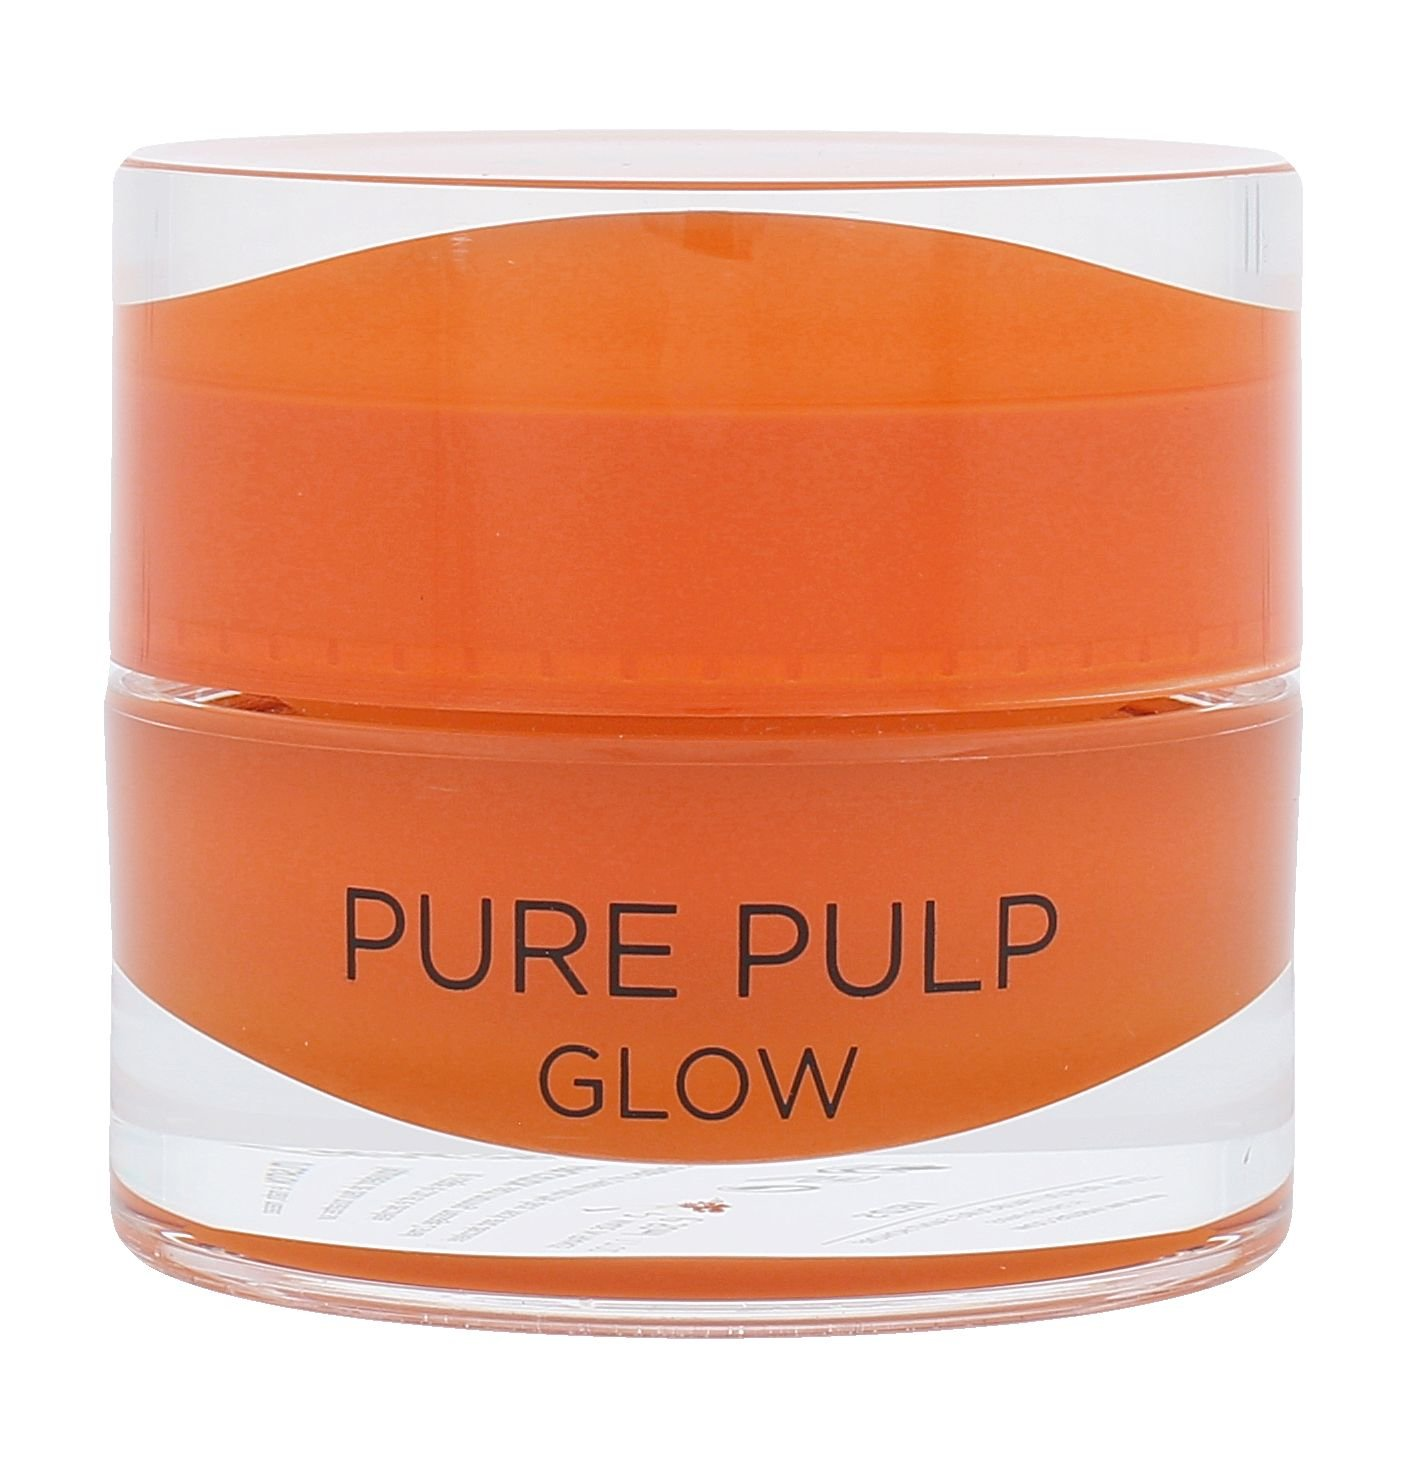 Veld´s Pure Pulp Glow Cosmetic 50ml